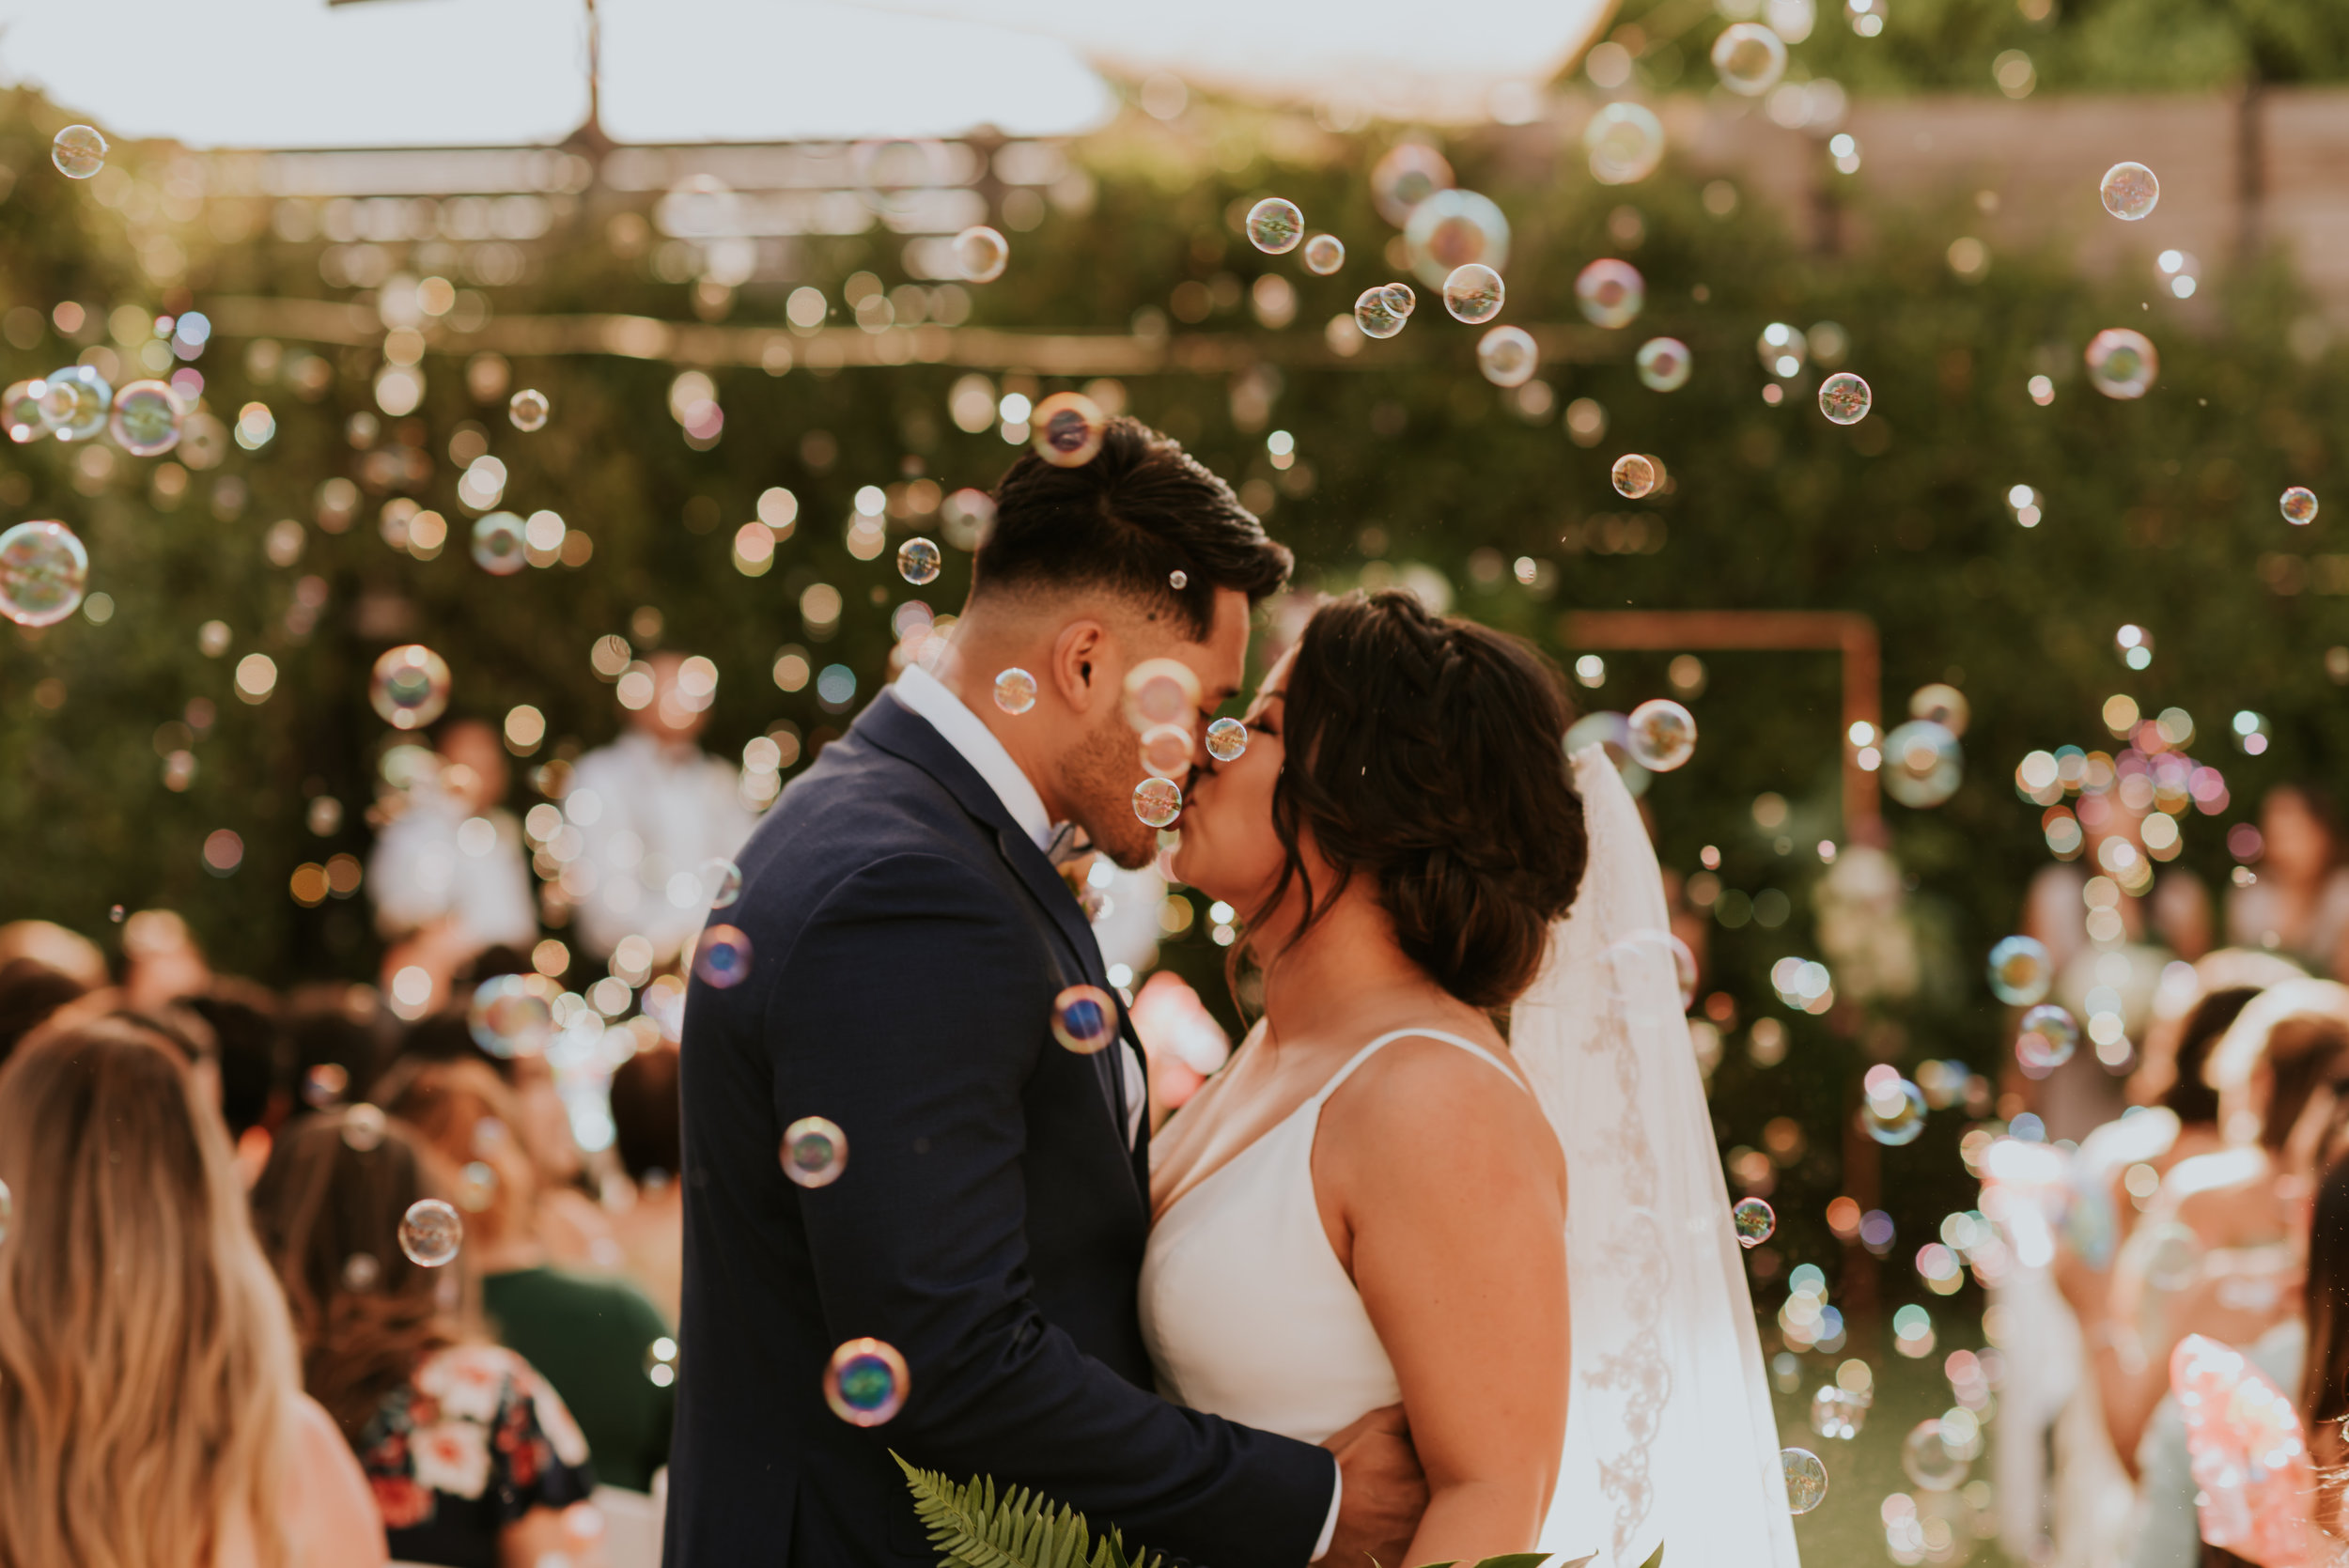 York Manor Wedding | Bubble Exit | Los Angeles, California | Los Angeles Wedding Photographer | Carrie Rogers Photography